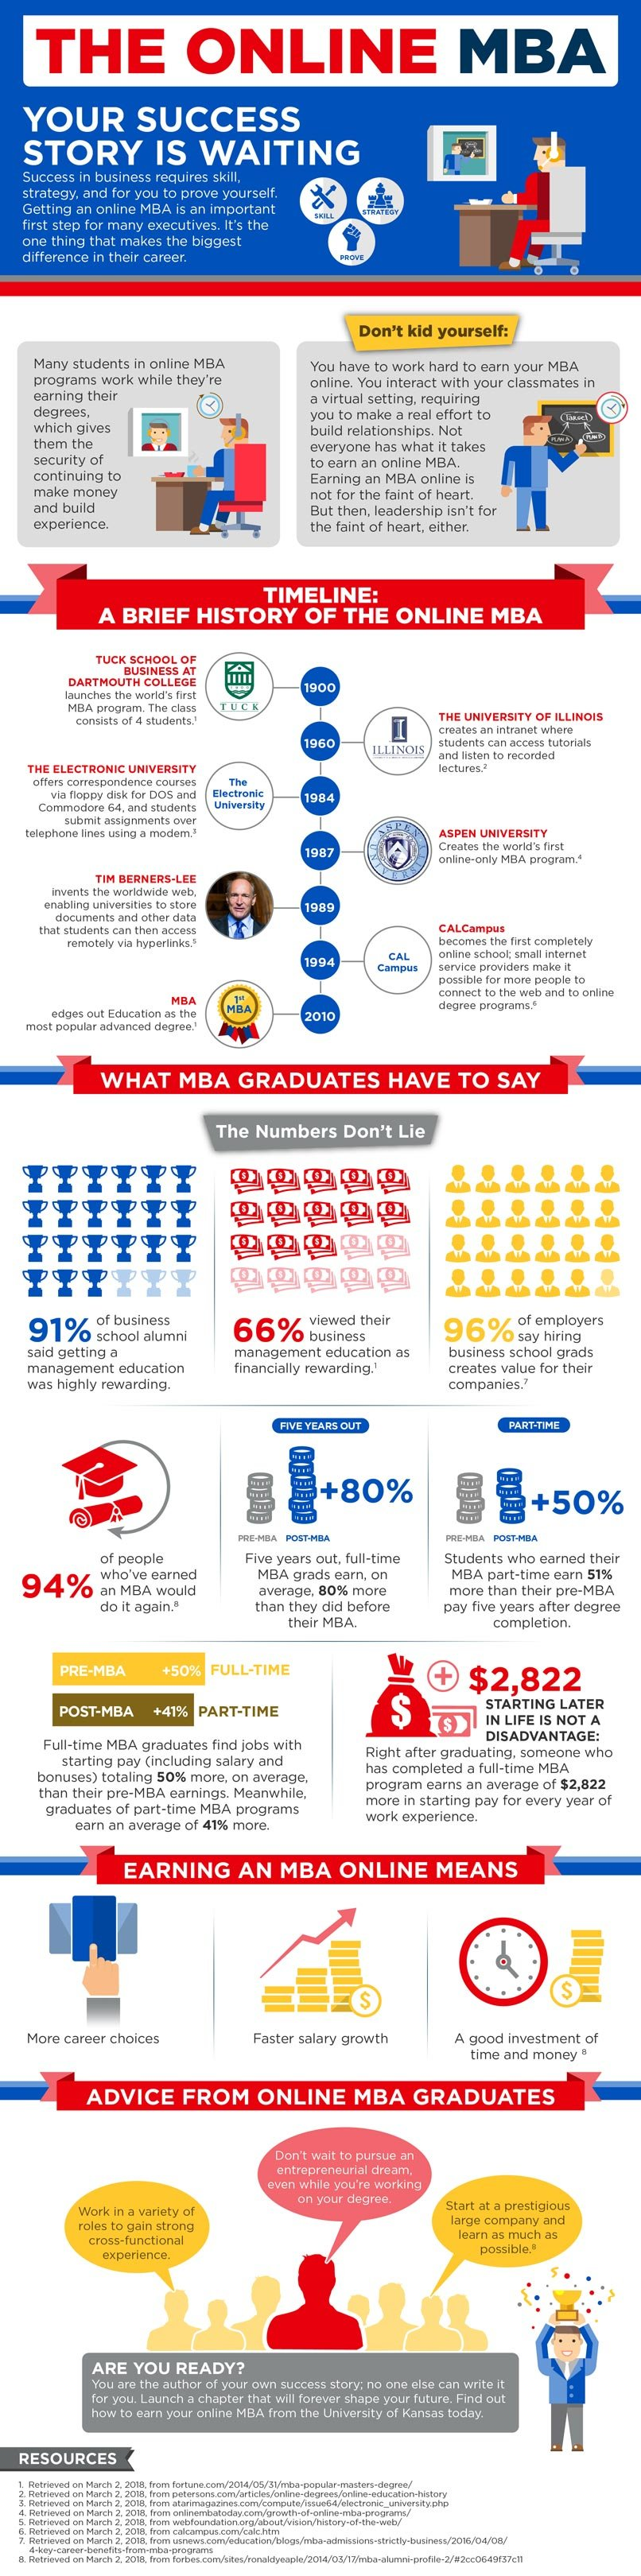 Define Your Success With an Online MBA